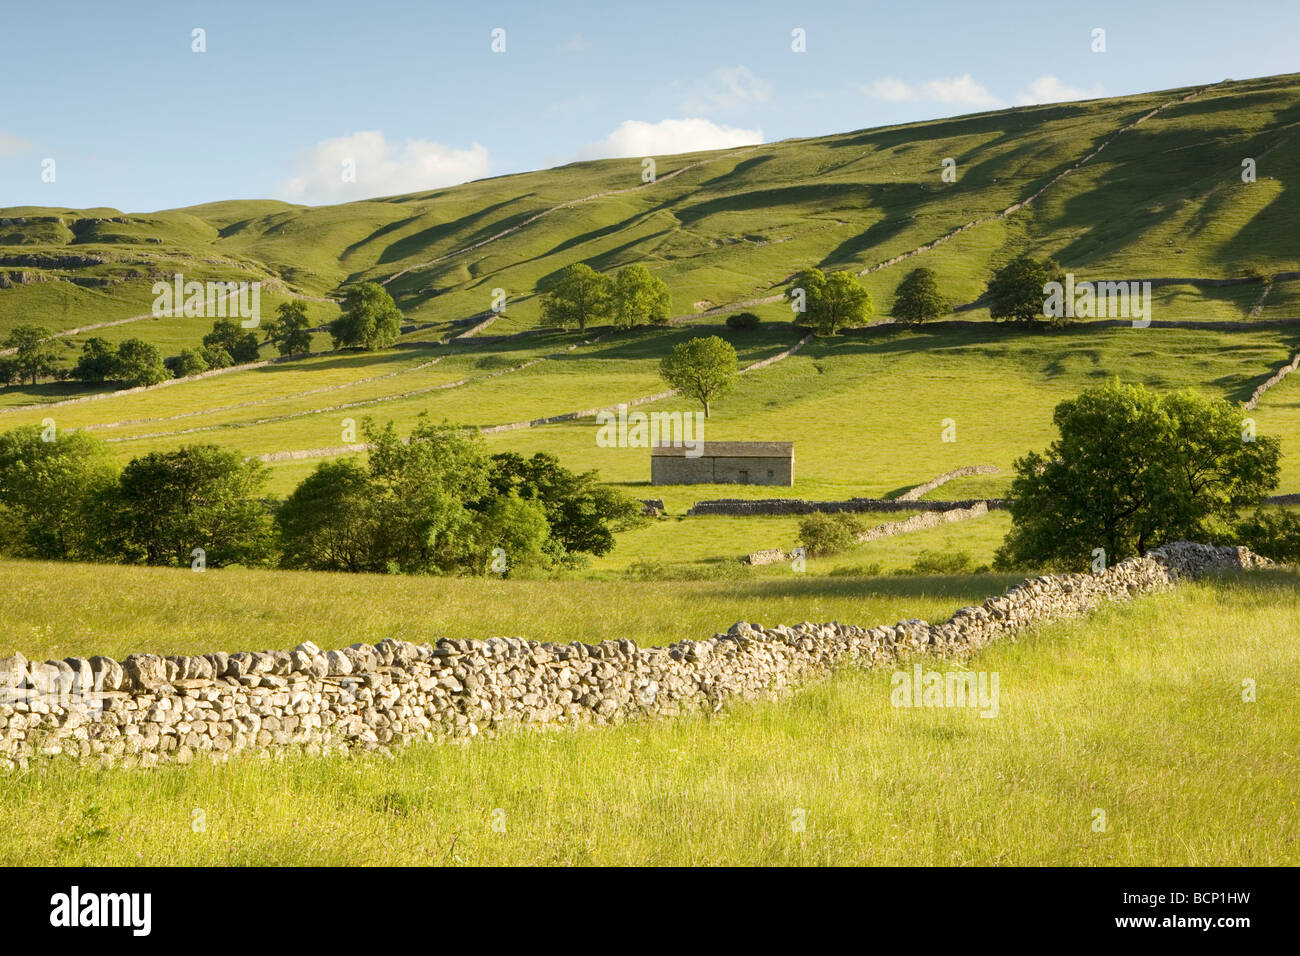 Summer in Wharfedale, Yorkshire Dales National Park, England - Stock Image